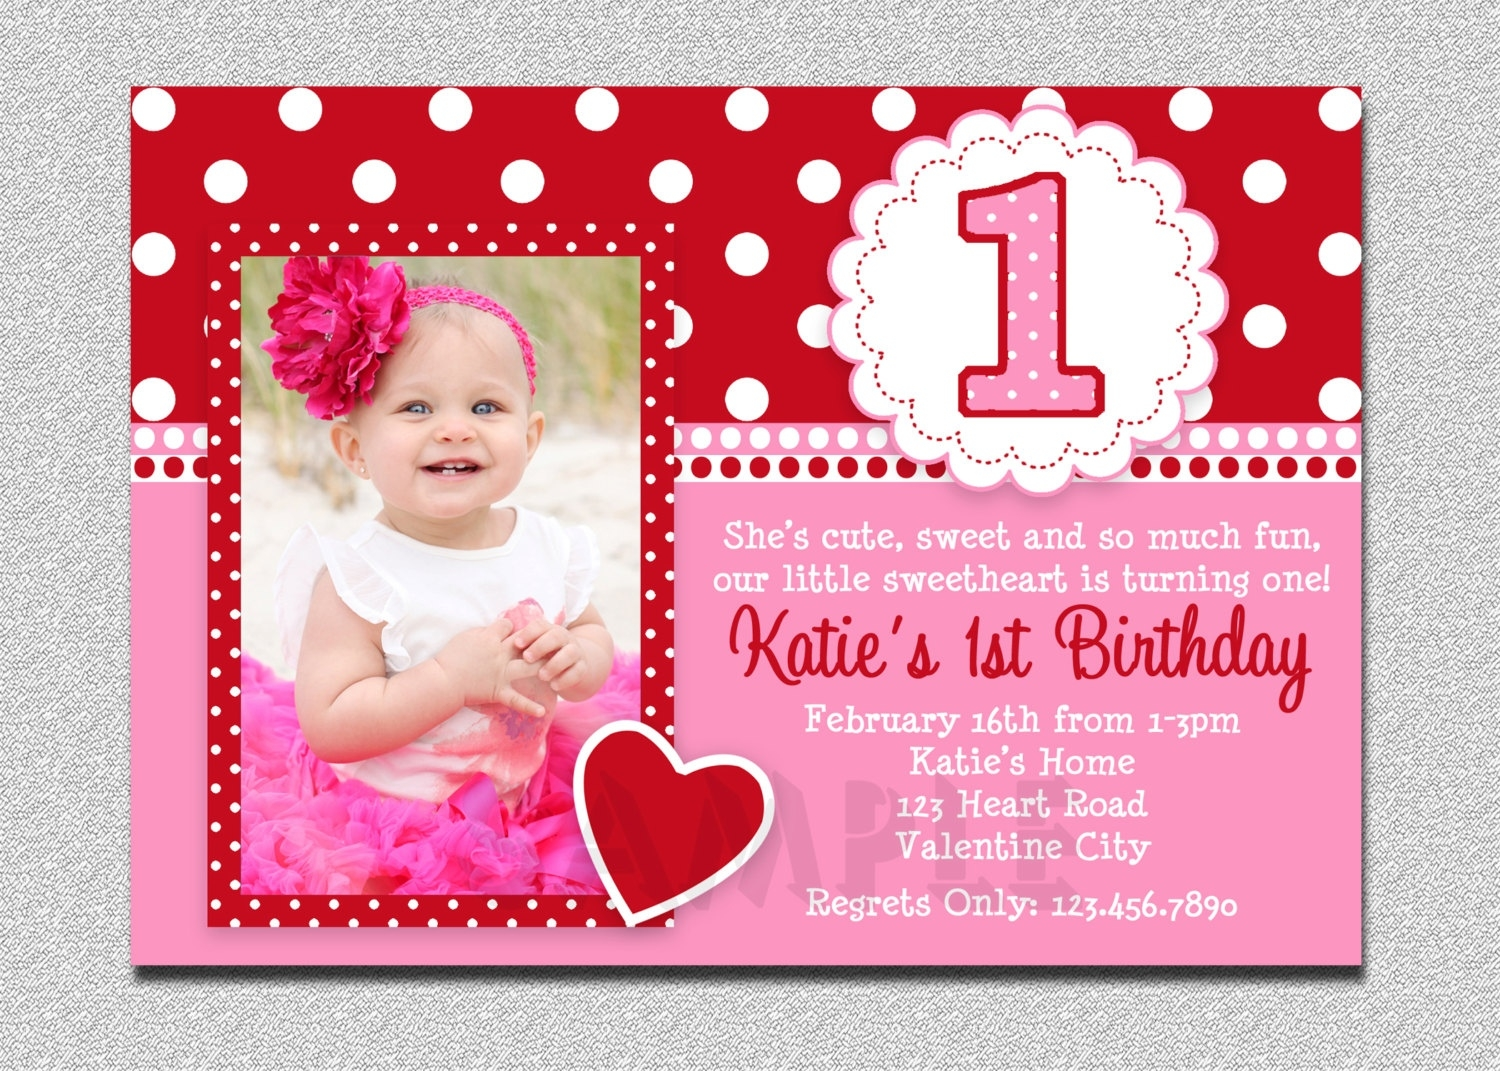 first birthday invitation card design ; valentines-birthday-invitation-1st-birthday-valentines-pertaining-to-1st-birthday-card-design-girl